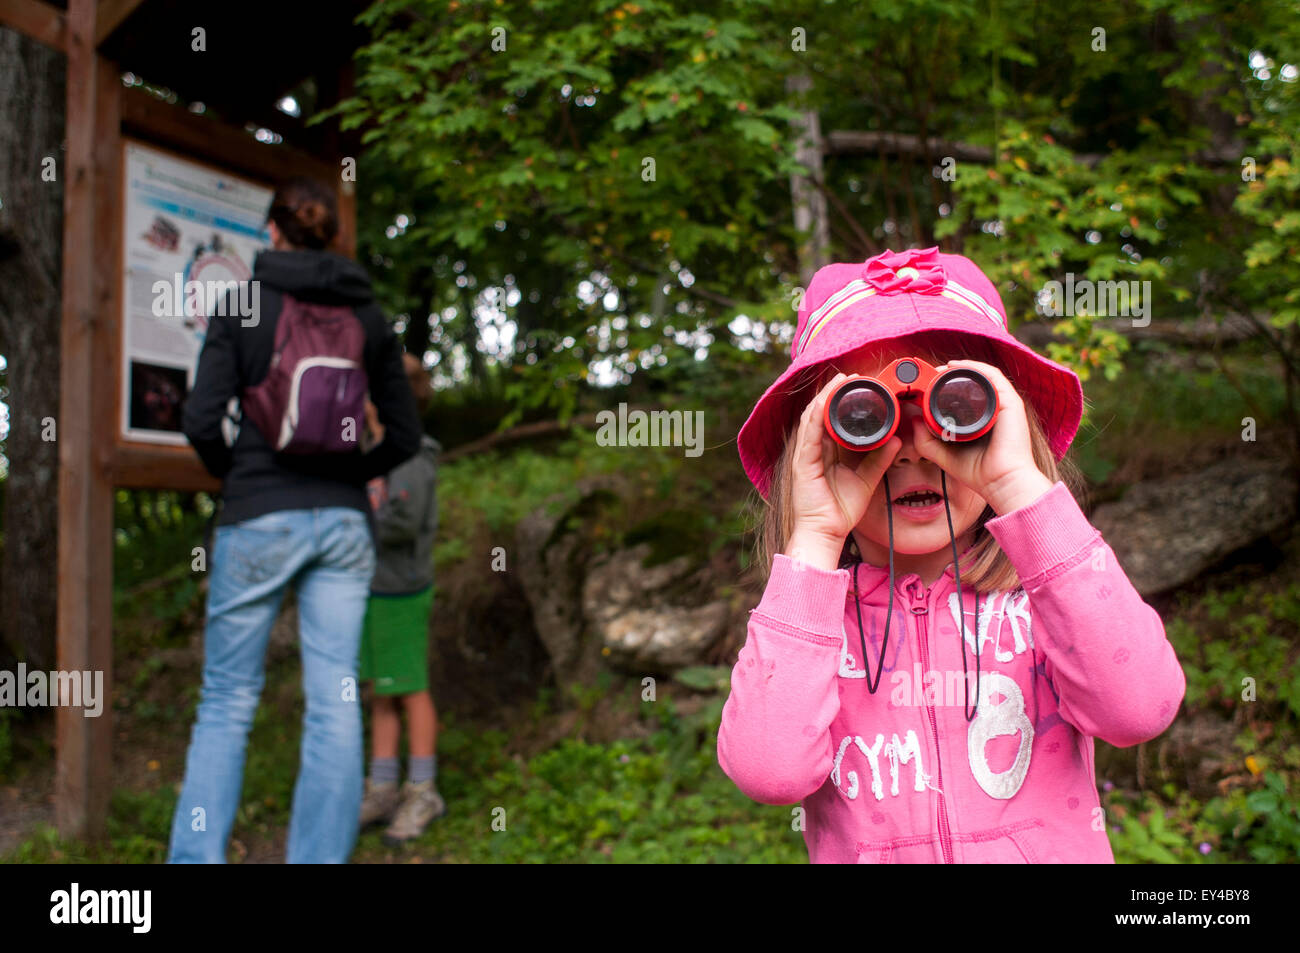 Young Girl Looking Through Binoculars While Woman and Young Boy Look at Hiking Map - Stock Image